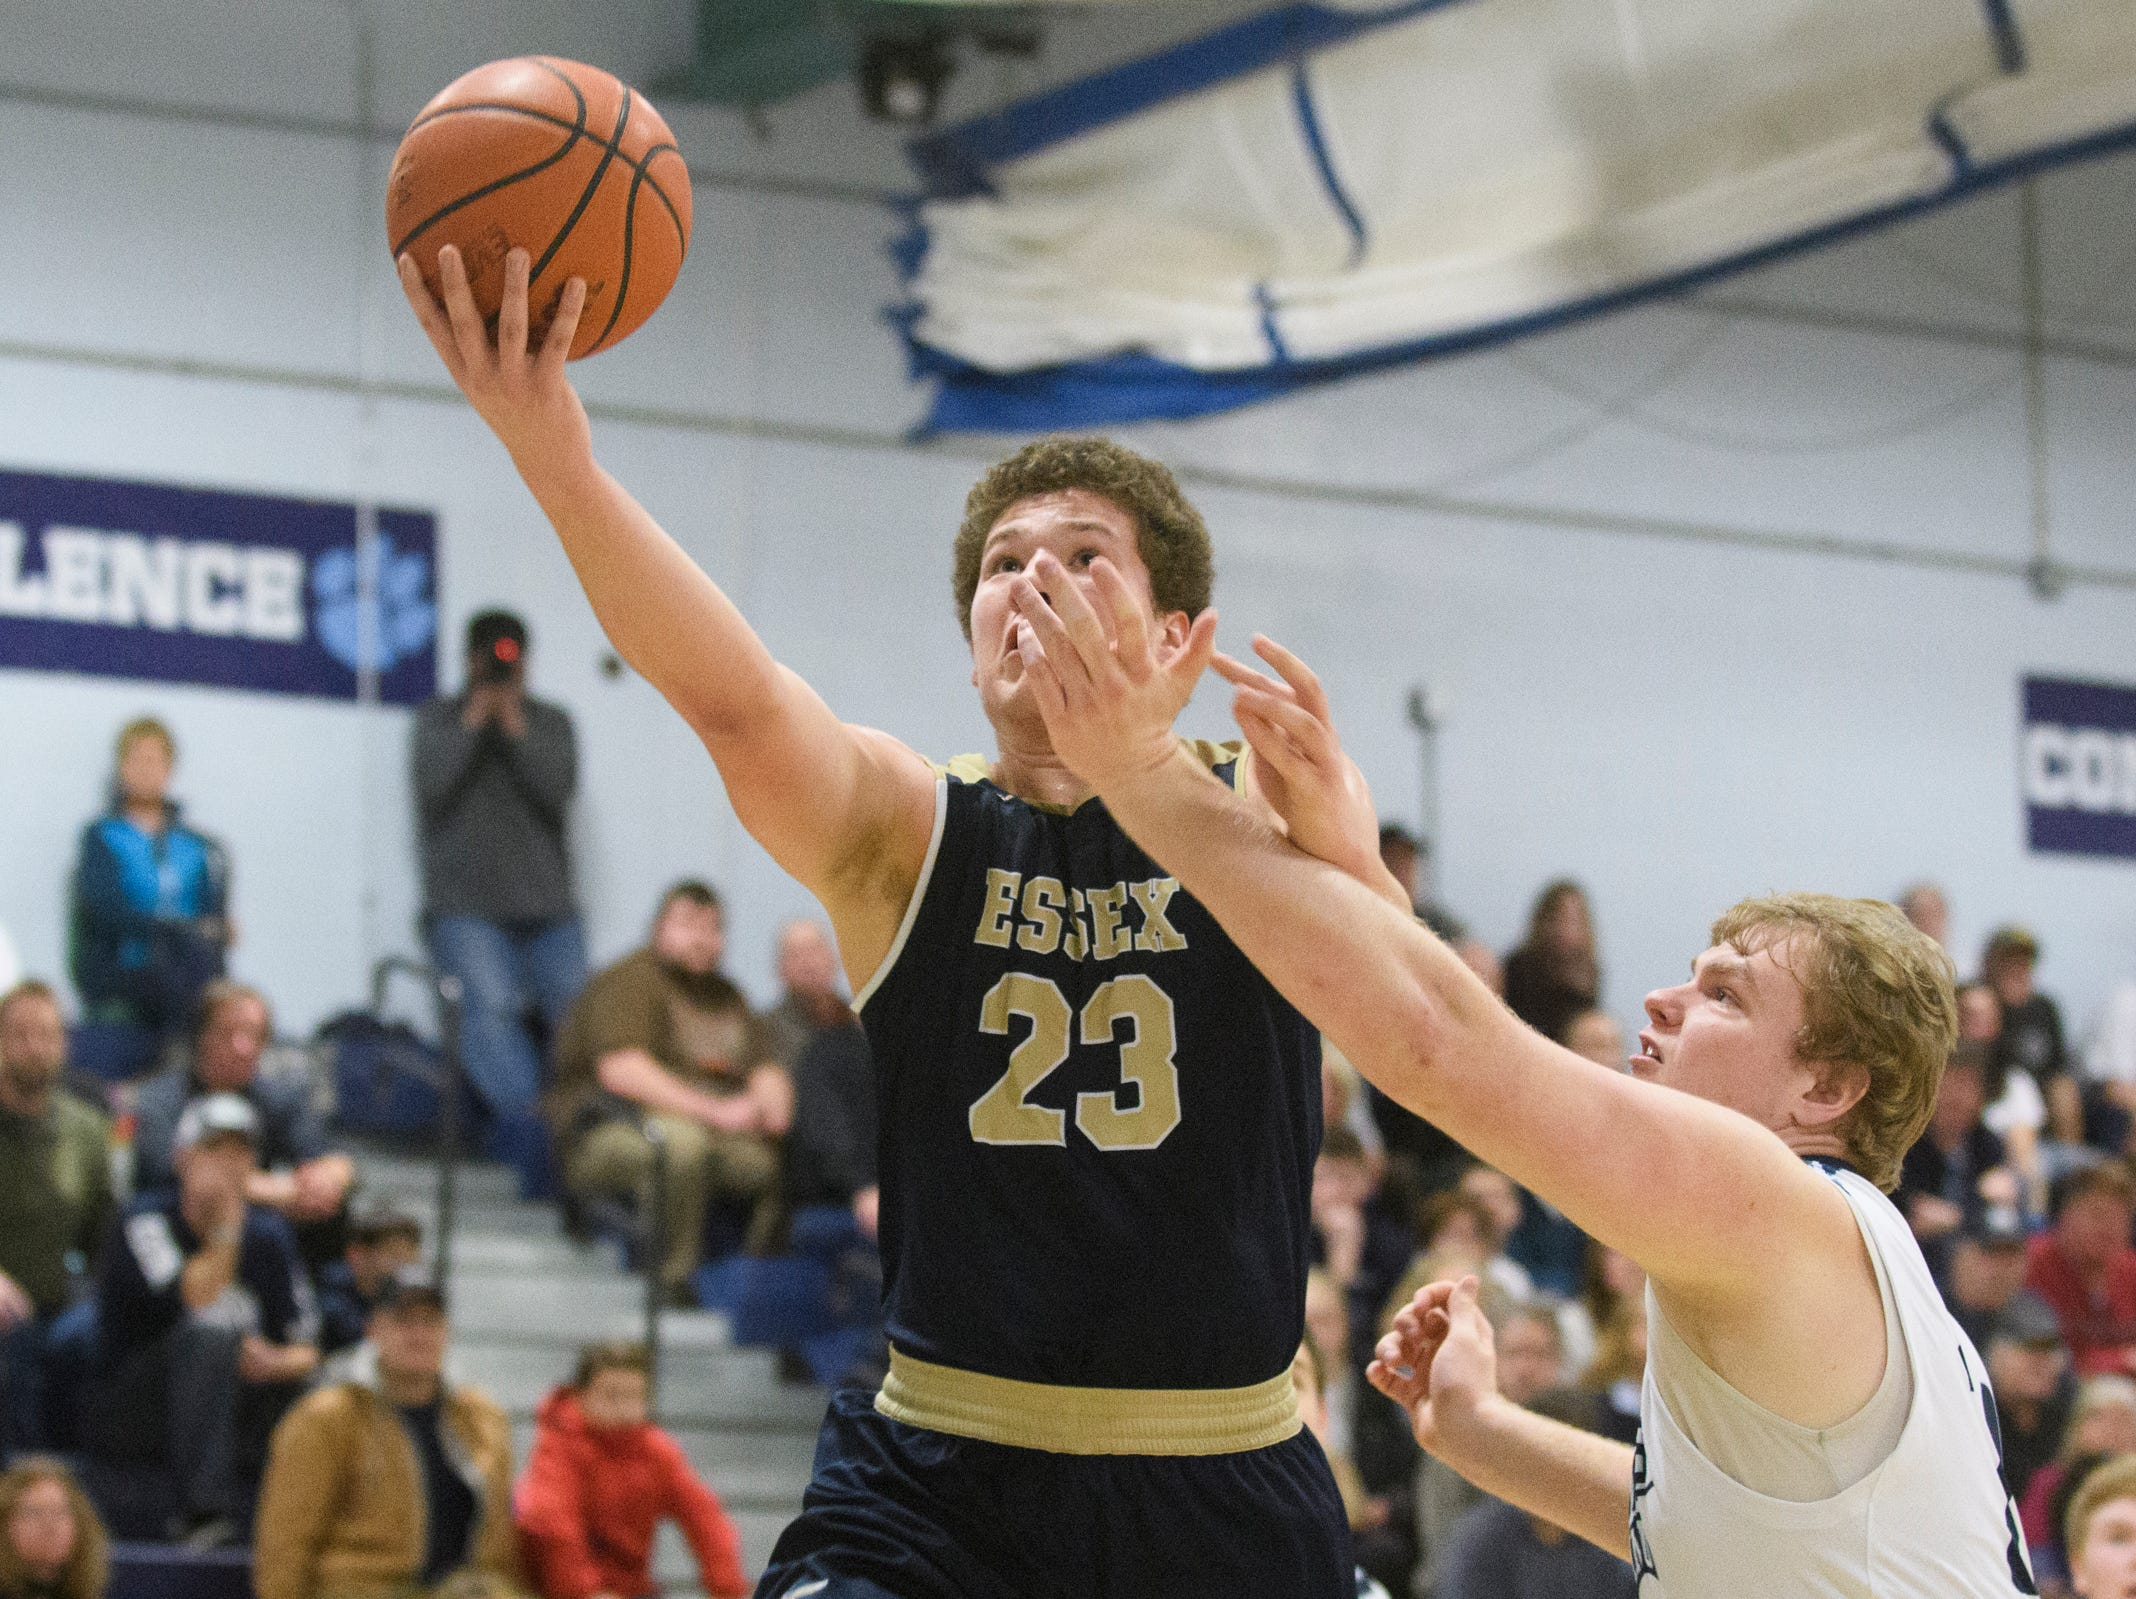 Essex's Anthony Decarvalho (23) leaps past MMU's Mark Howland (24) for a lay up during the boys basketball game between the Essex Hornets and the Mount Mansfield Cougars at MMU High School on Wednesday night February 13, 2019 in Jericho, Vermont.